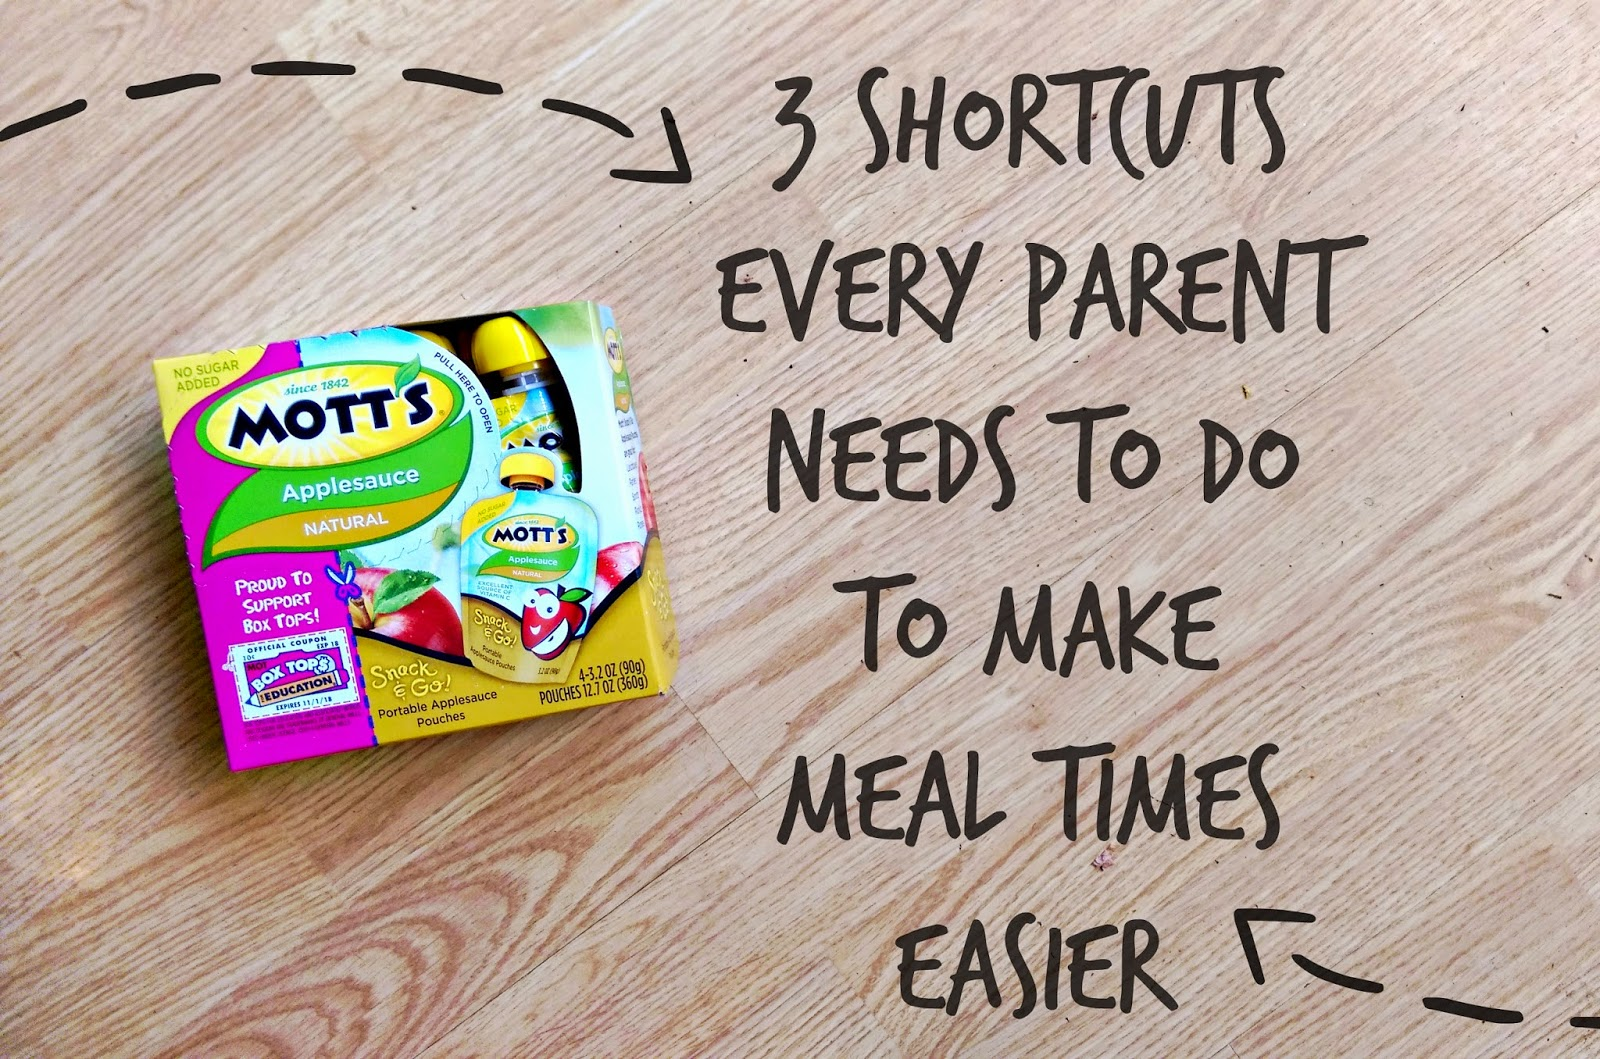 3 Shortcuts Every Parent Needs to do to Make Eating Times Easier #Mott'sGood&Honest #ad @motts